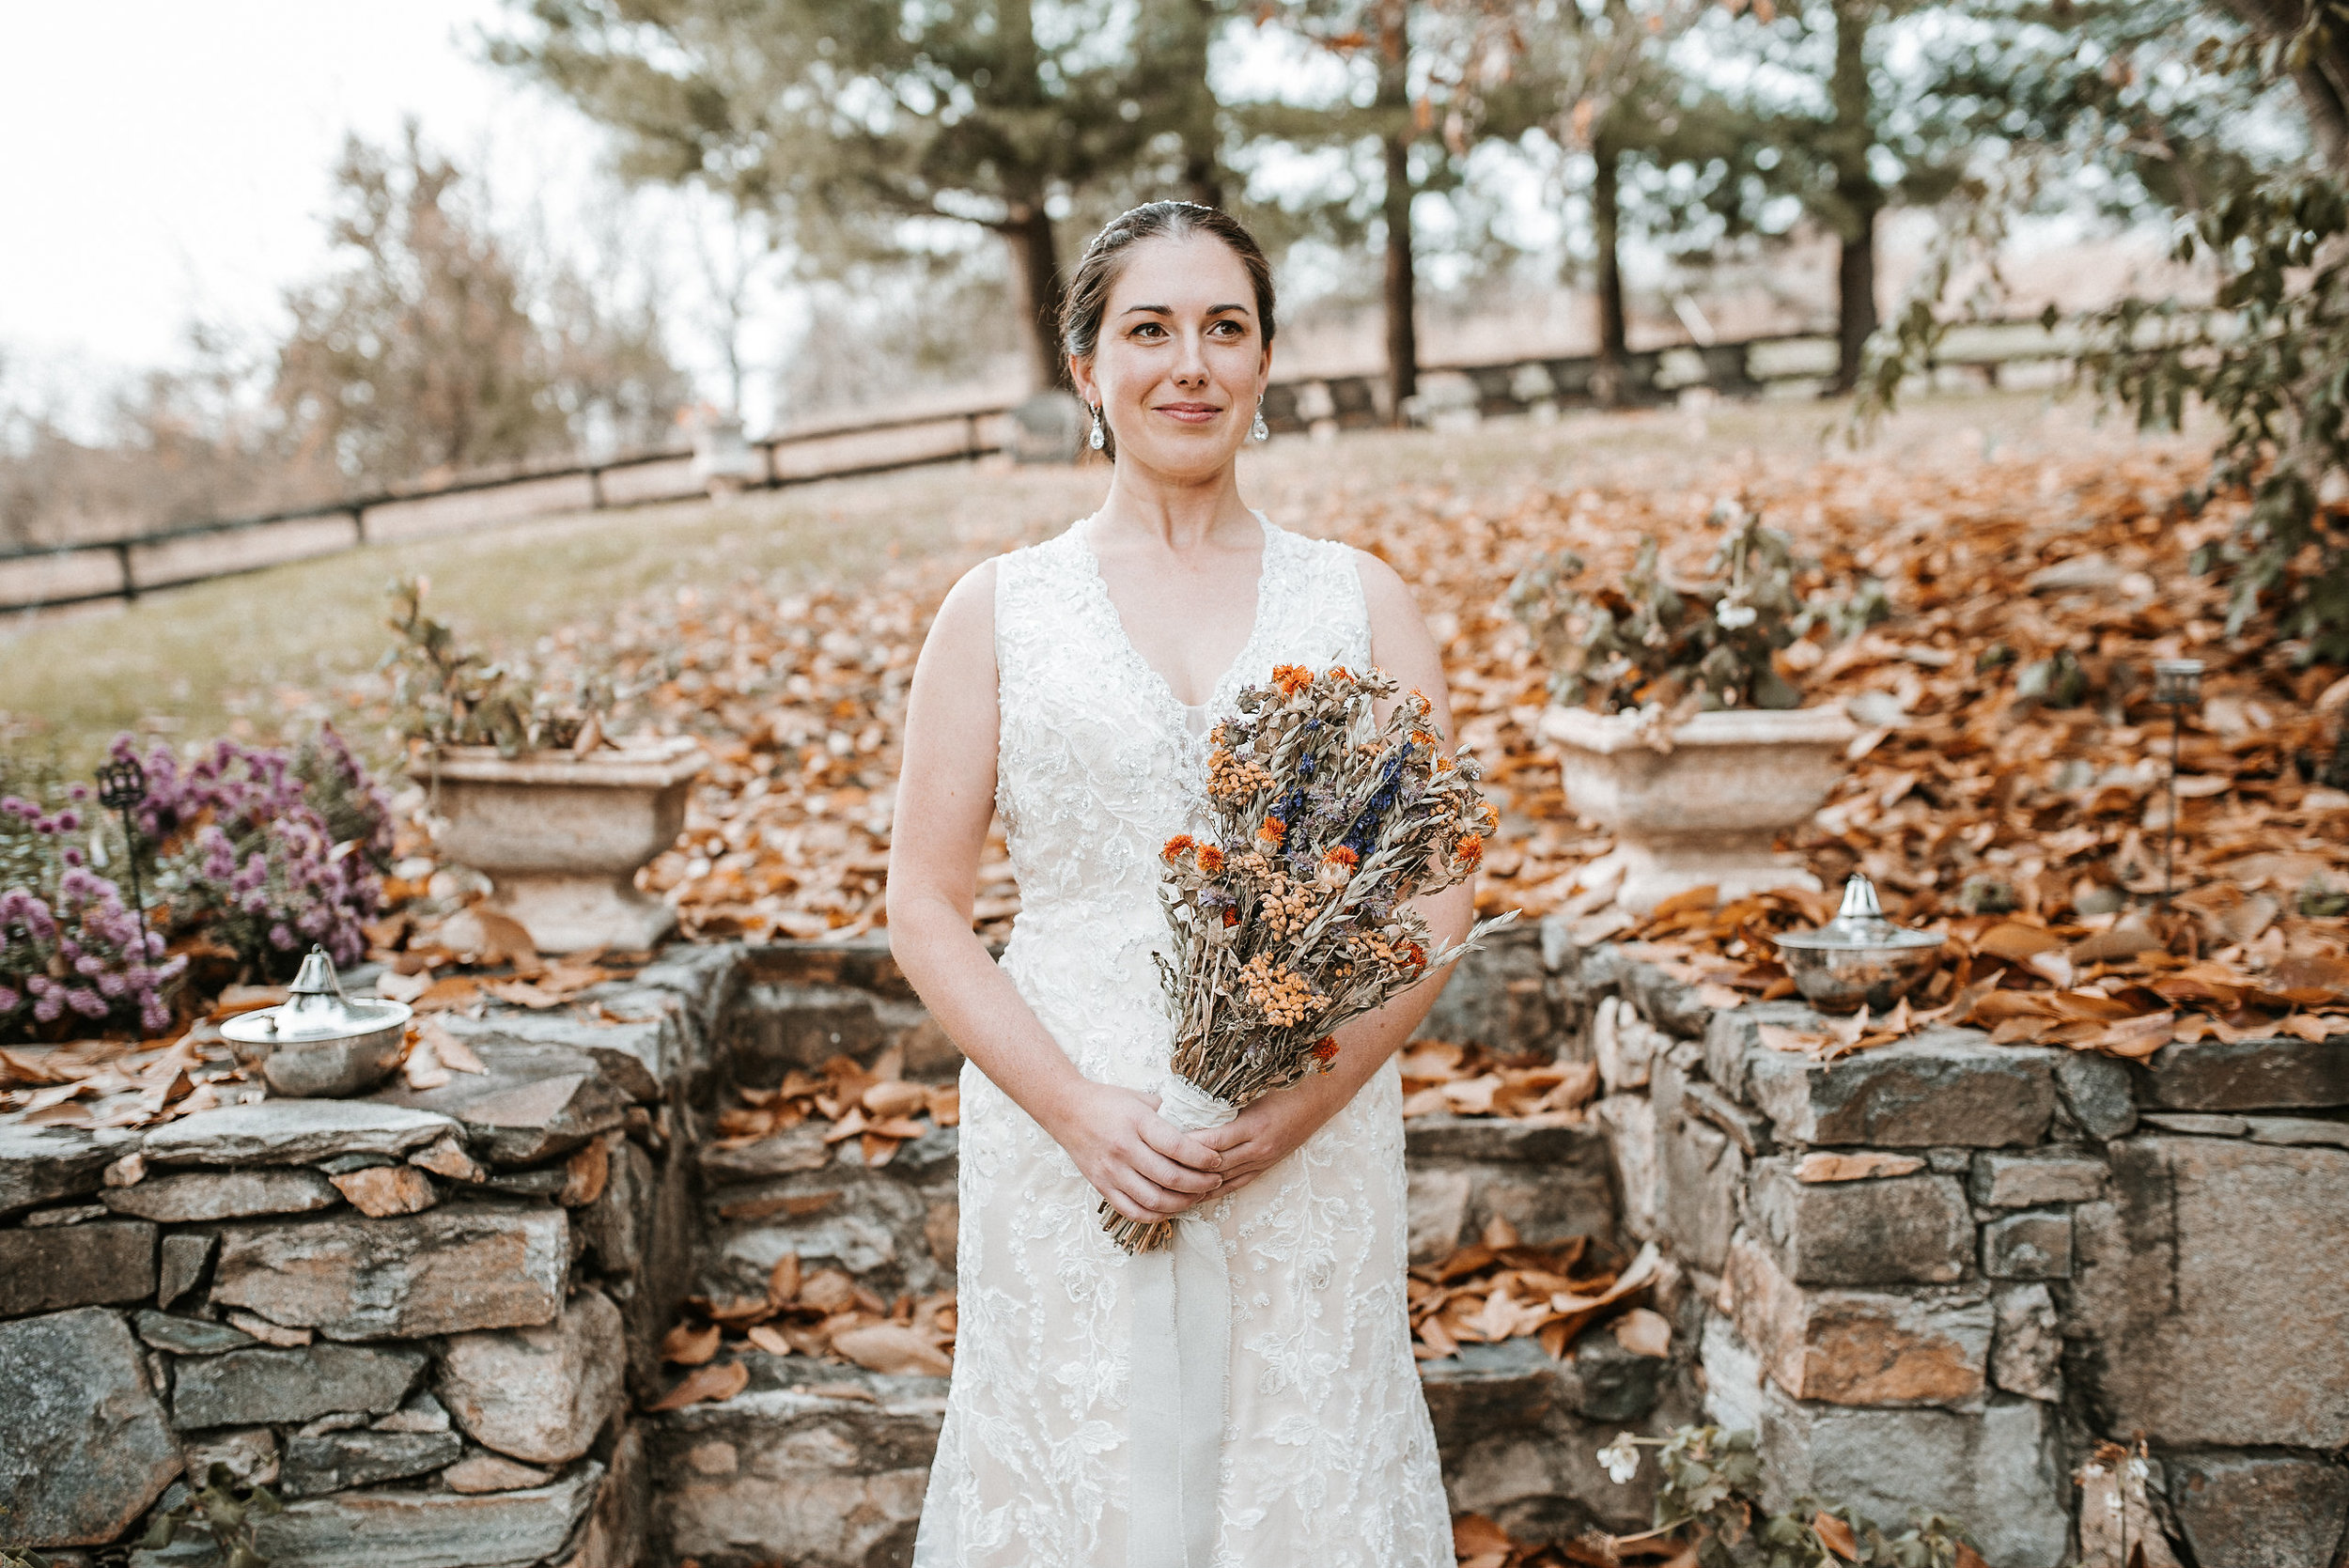 Bride in front of stone steps